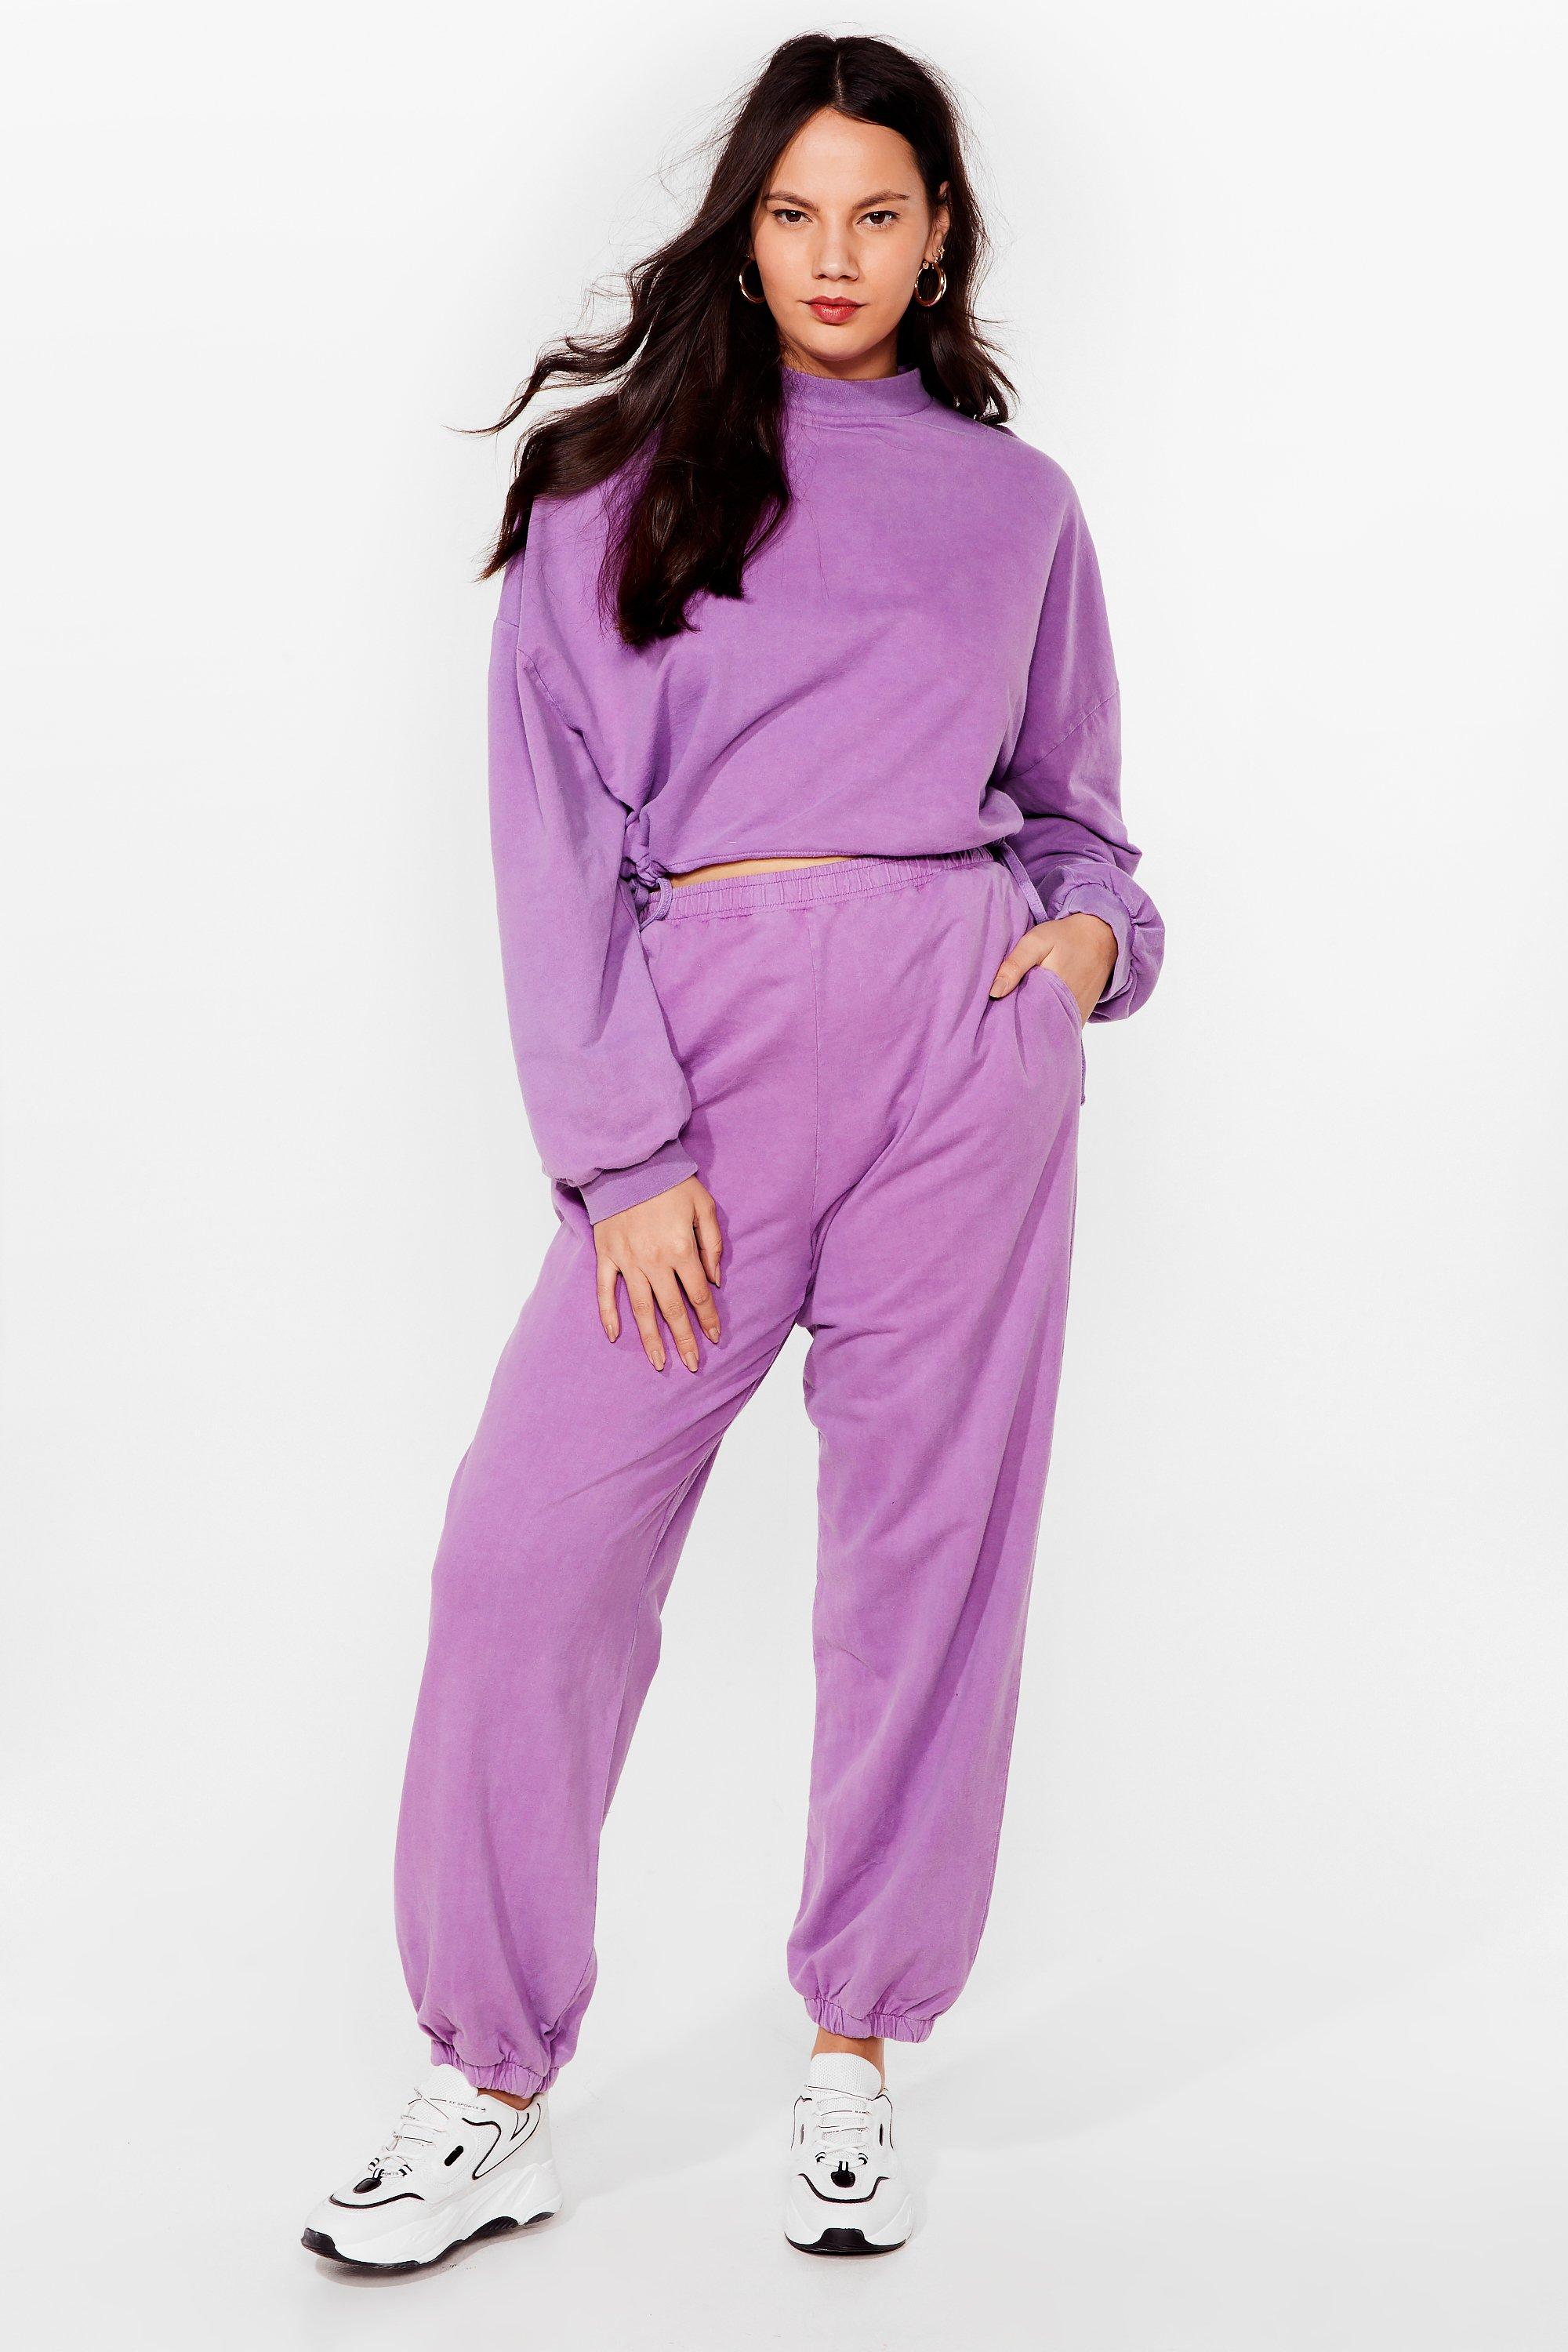 Hey Wash Out Cropped Sweatshirt and Jogger Set 8